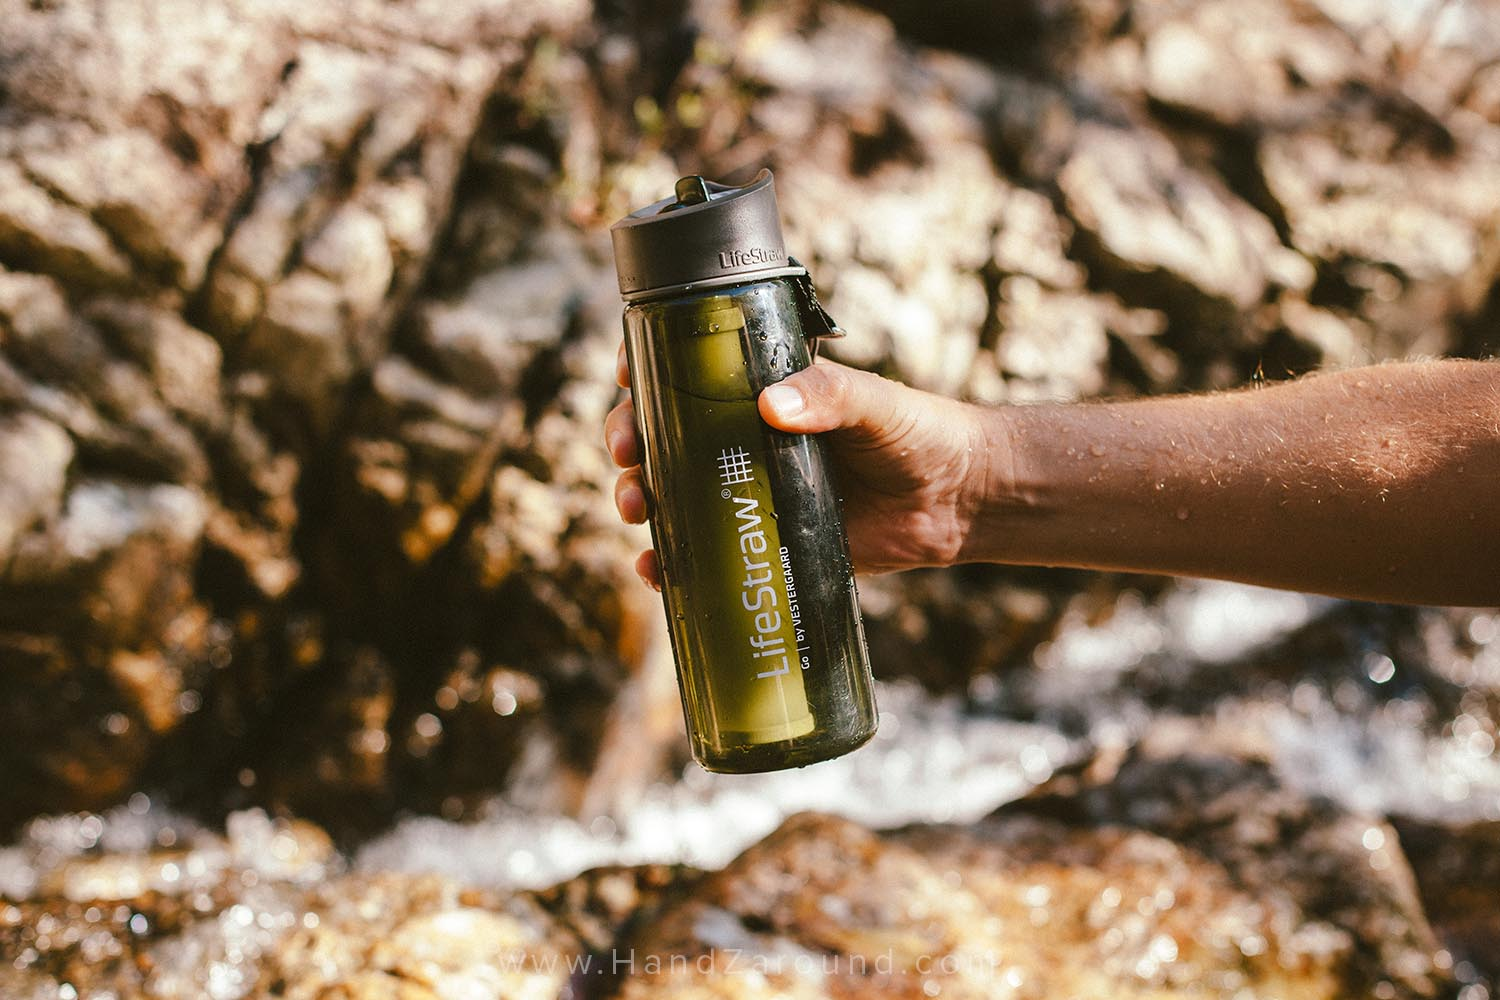 LifeStraw Bottle  is a great travel companion - it helps you keep hydrated wherever you go